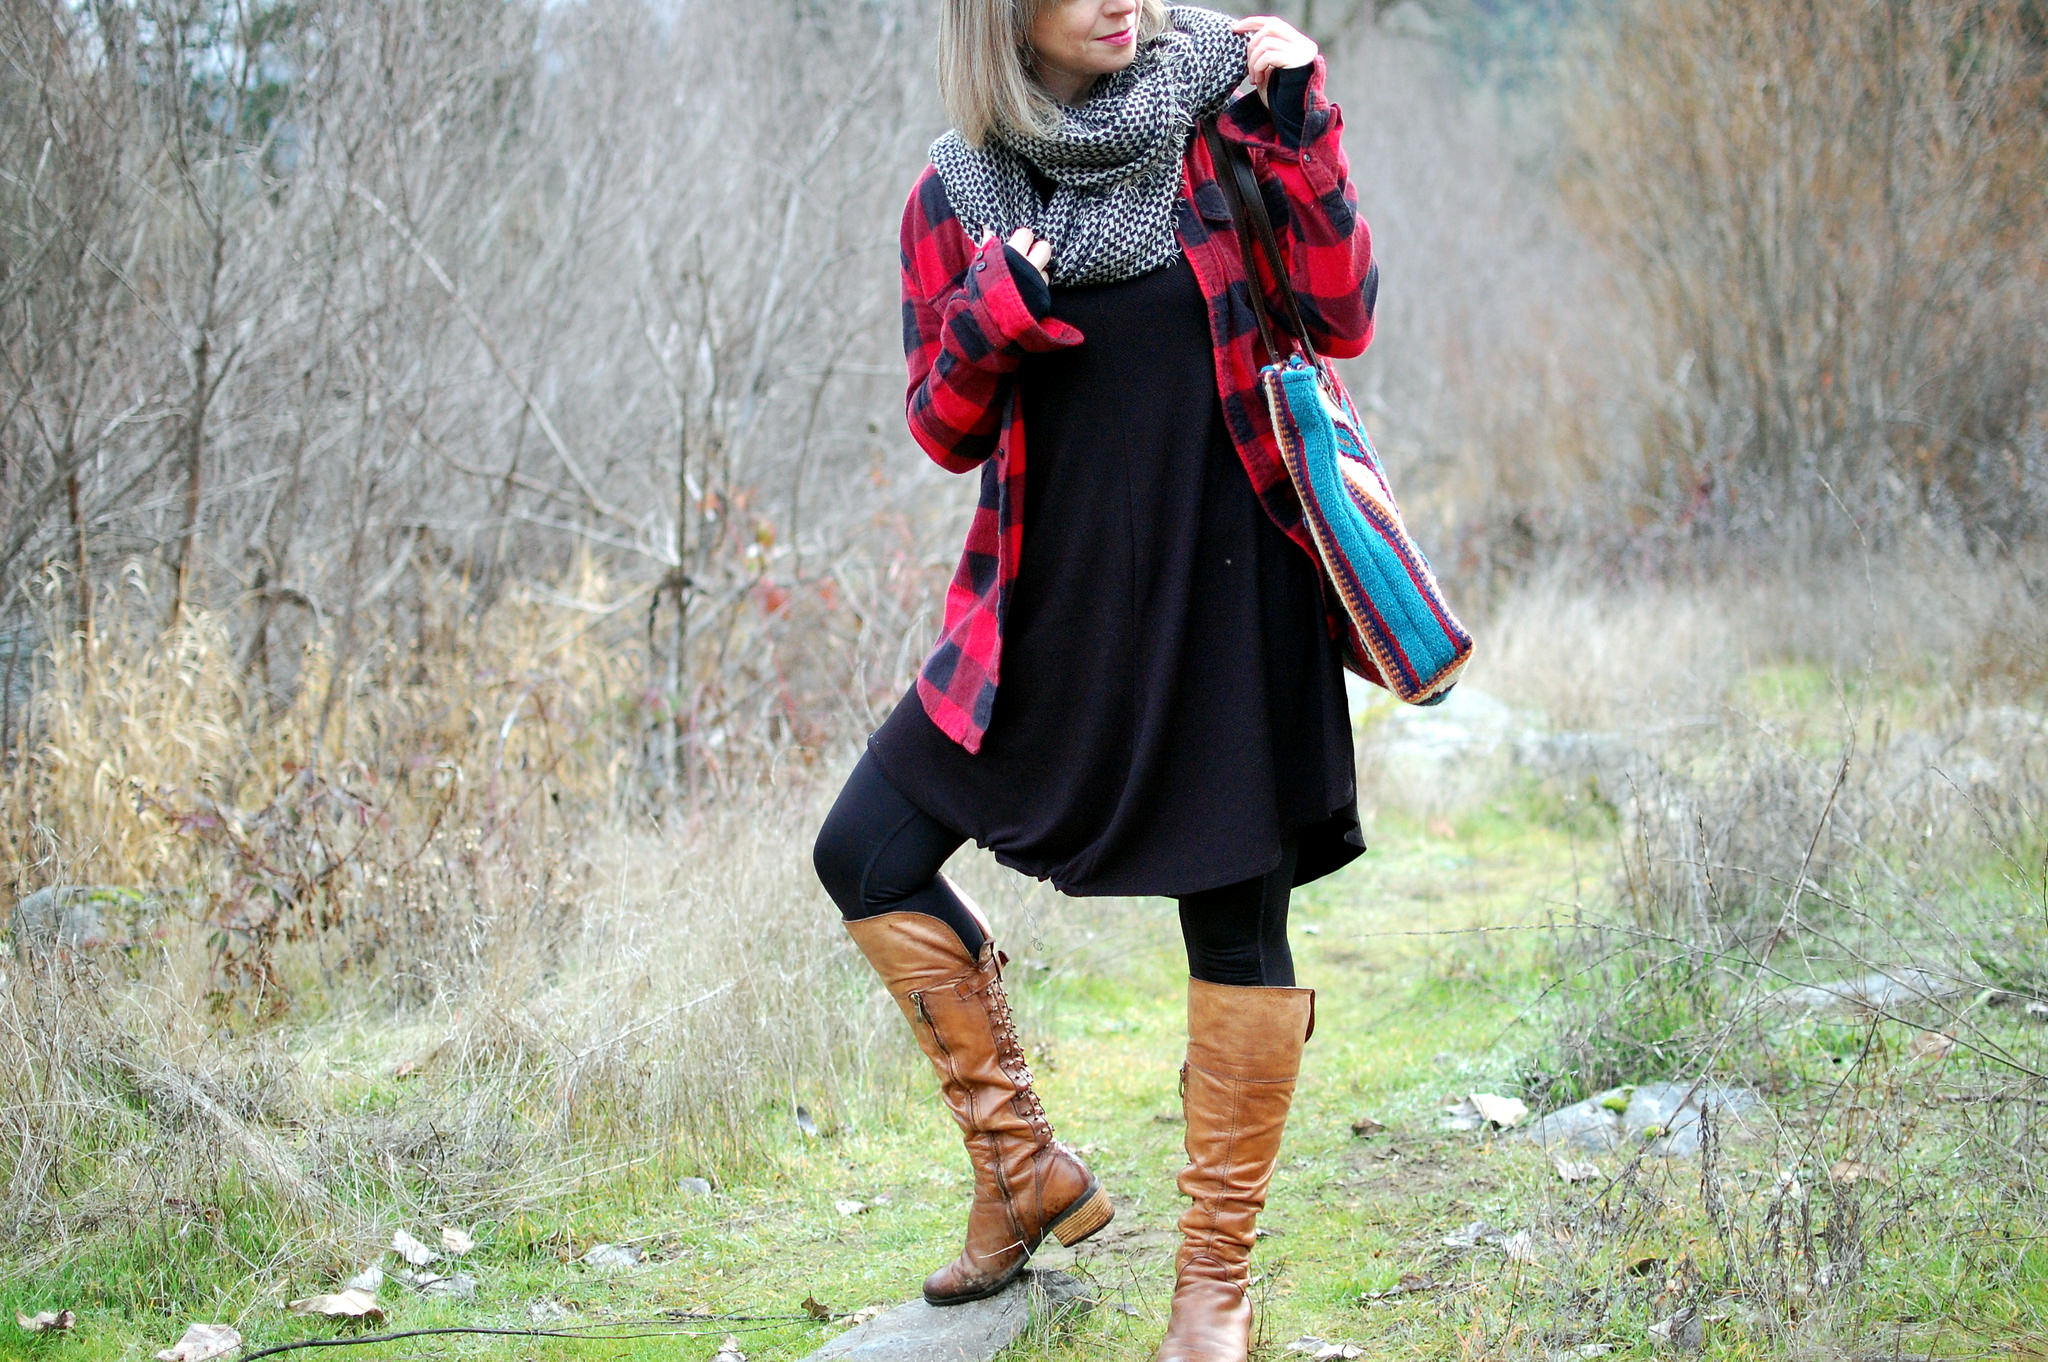 buffalo plaid flannel shirt daily outfit blog whatiwore2day ootd